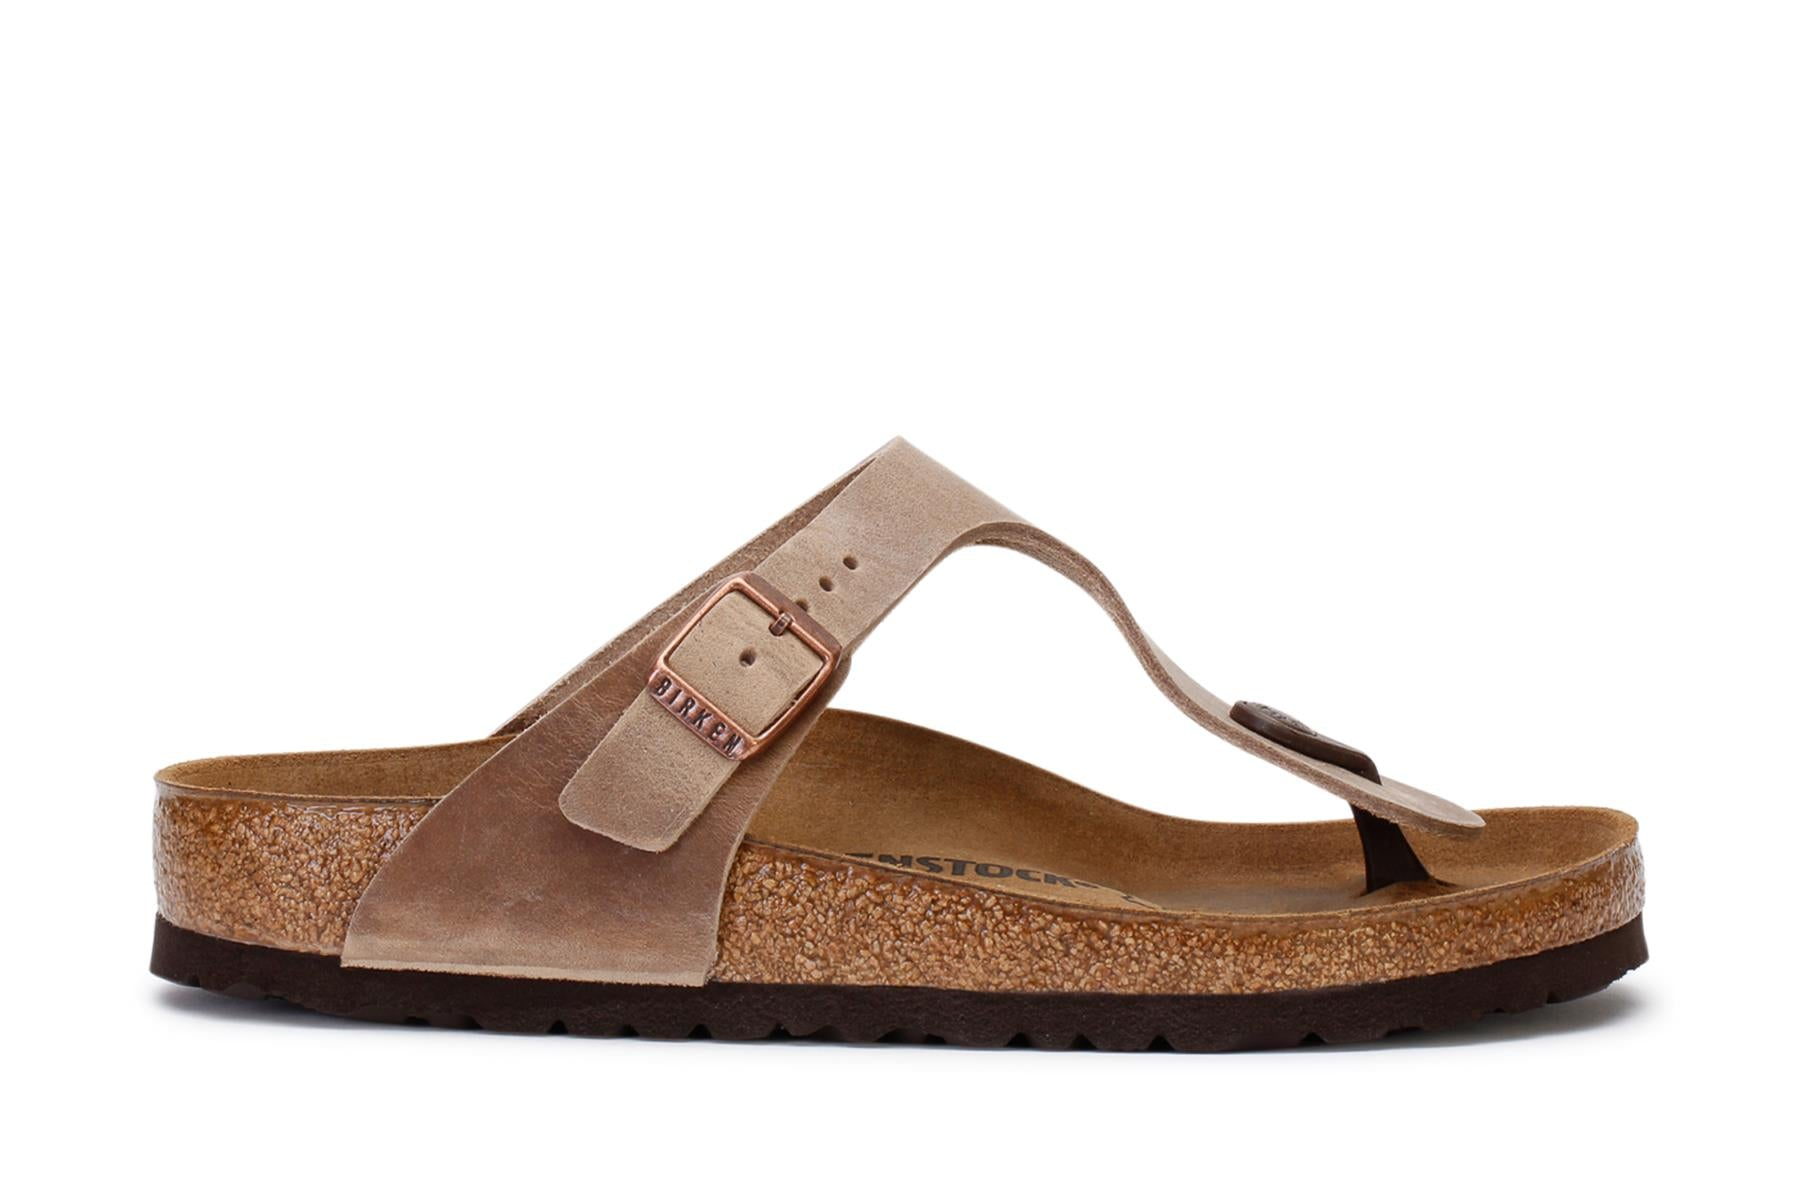 birkenstock-womens-thong-sandals-gizeh-bs-tobacco-brown-943811-main